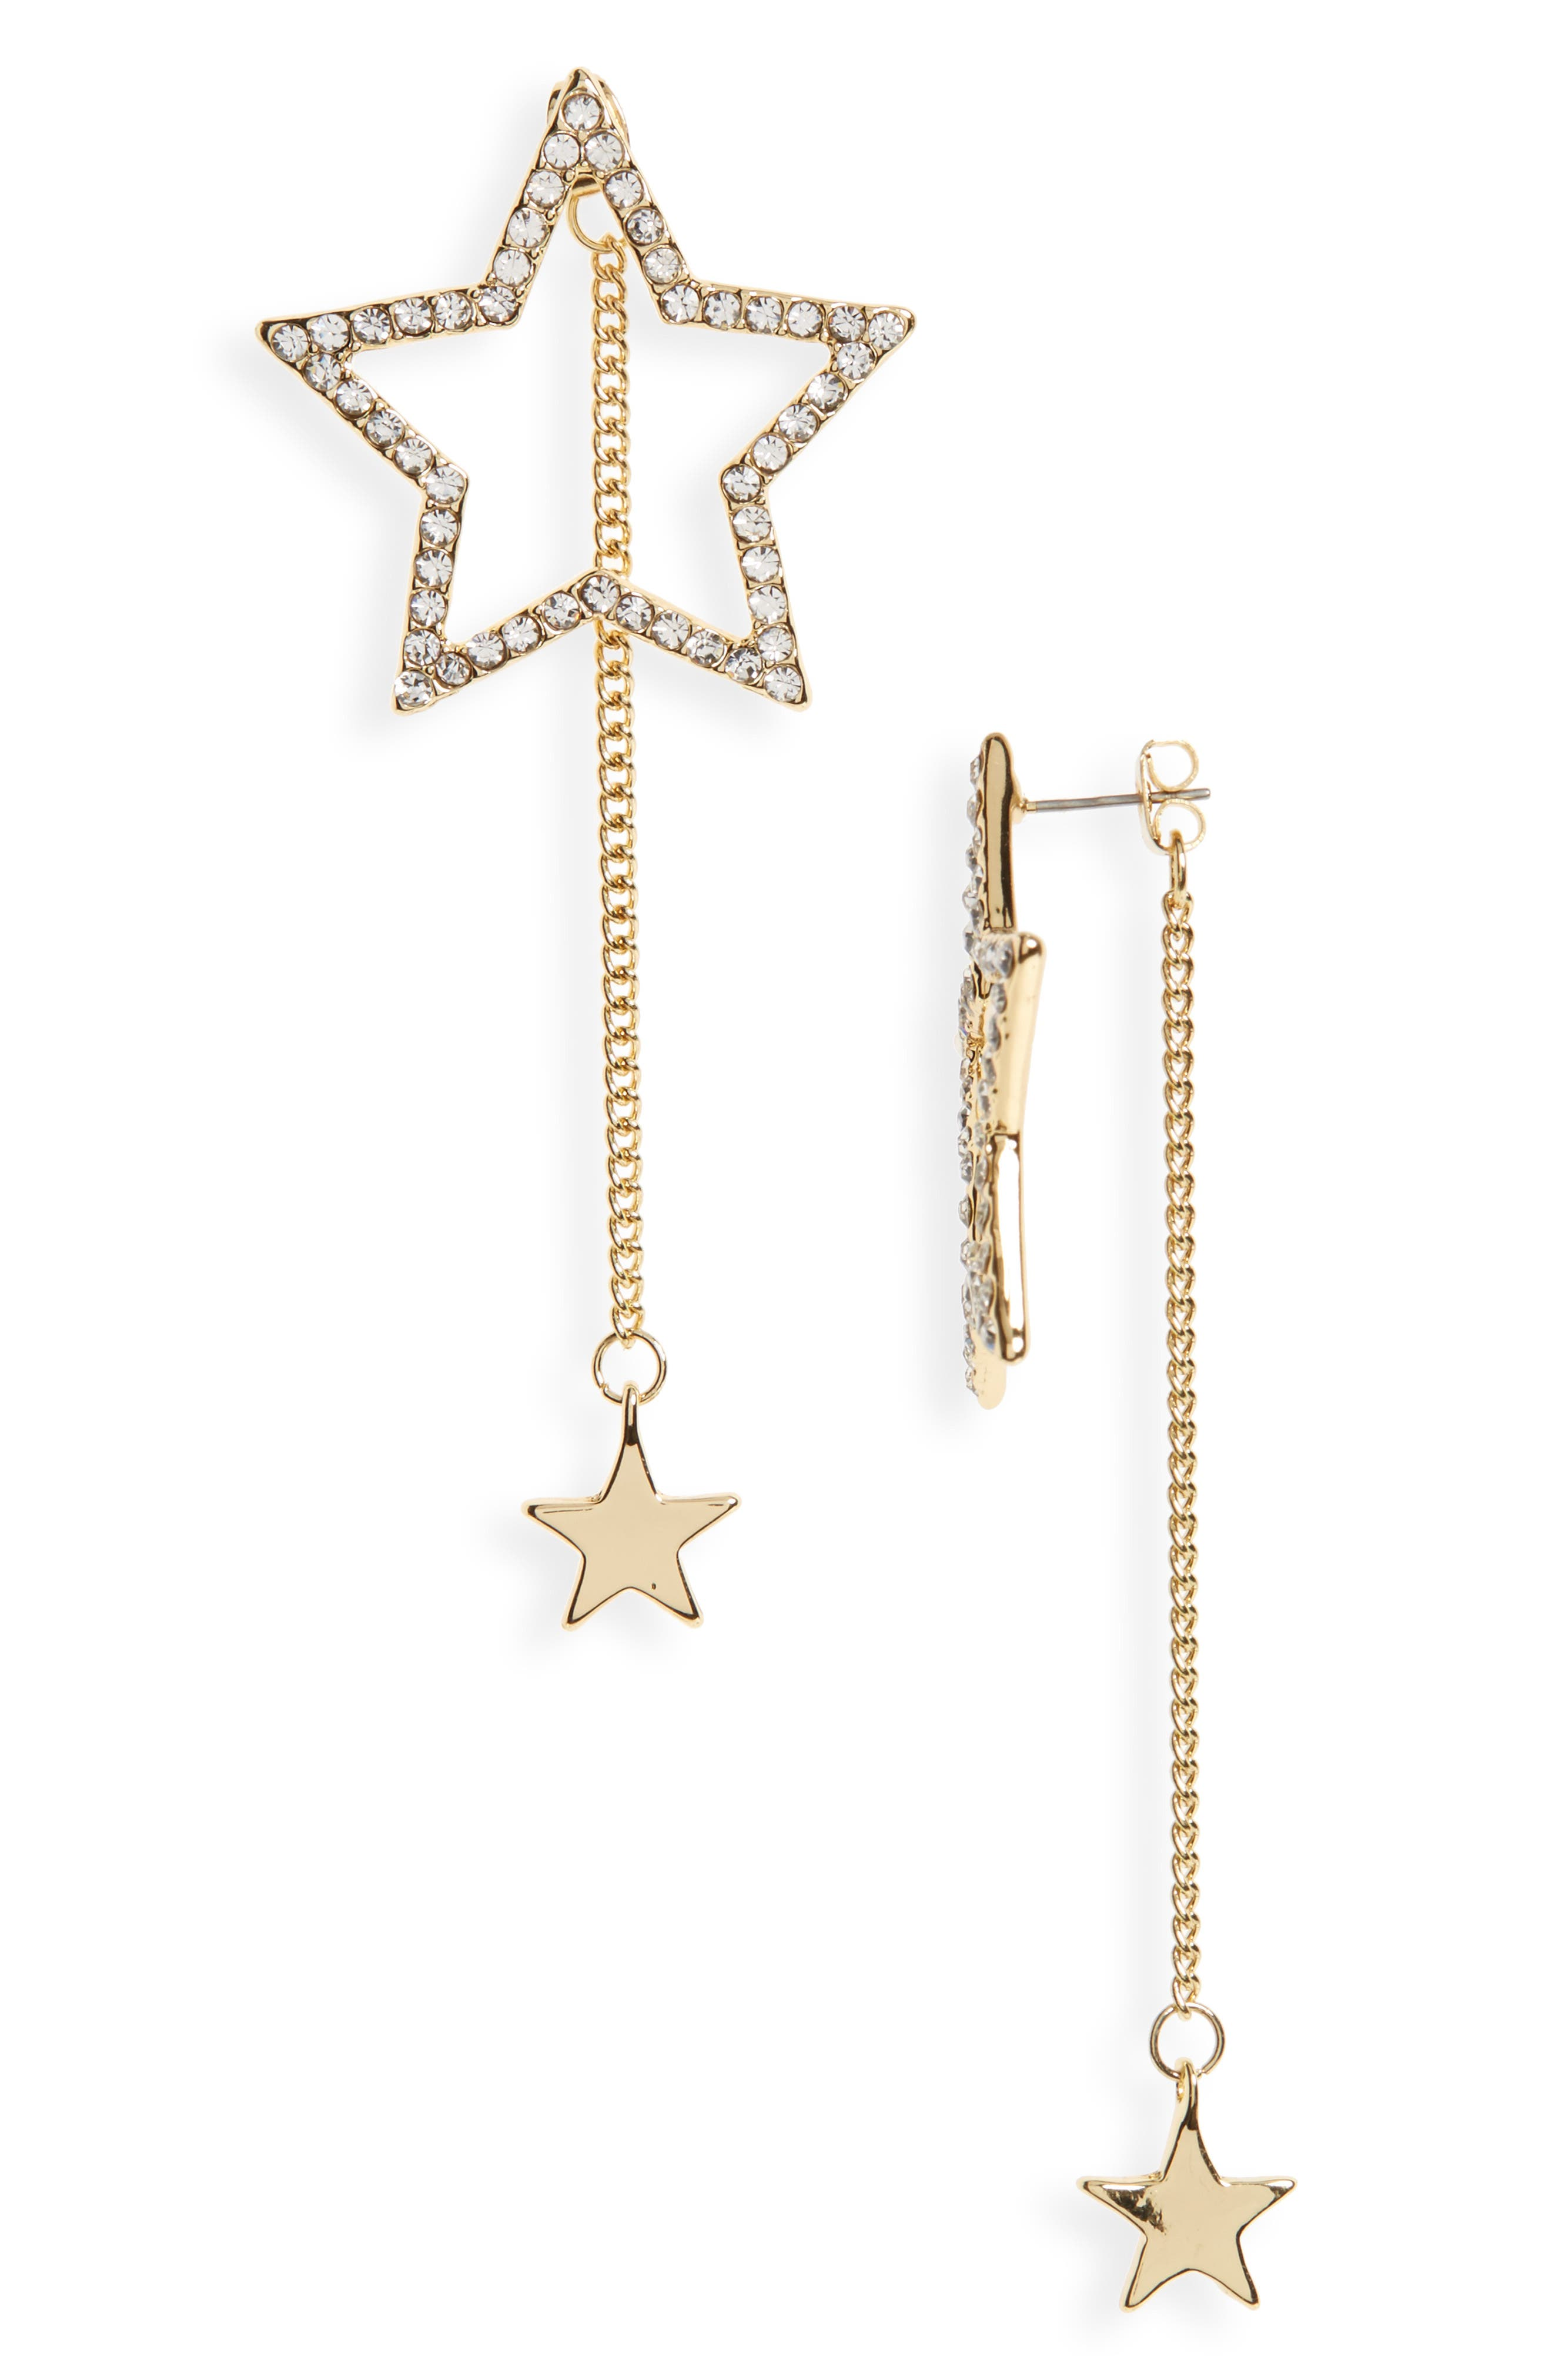 Large Star Statement Earrings,                             Main thumbnail 1, color,                             040